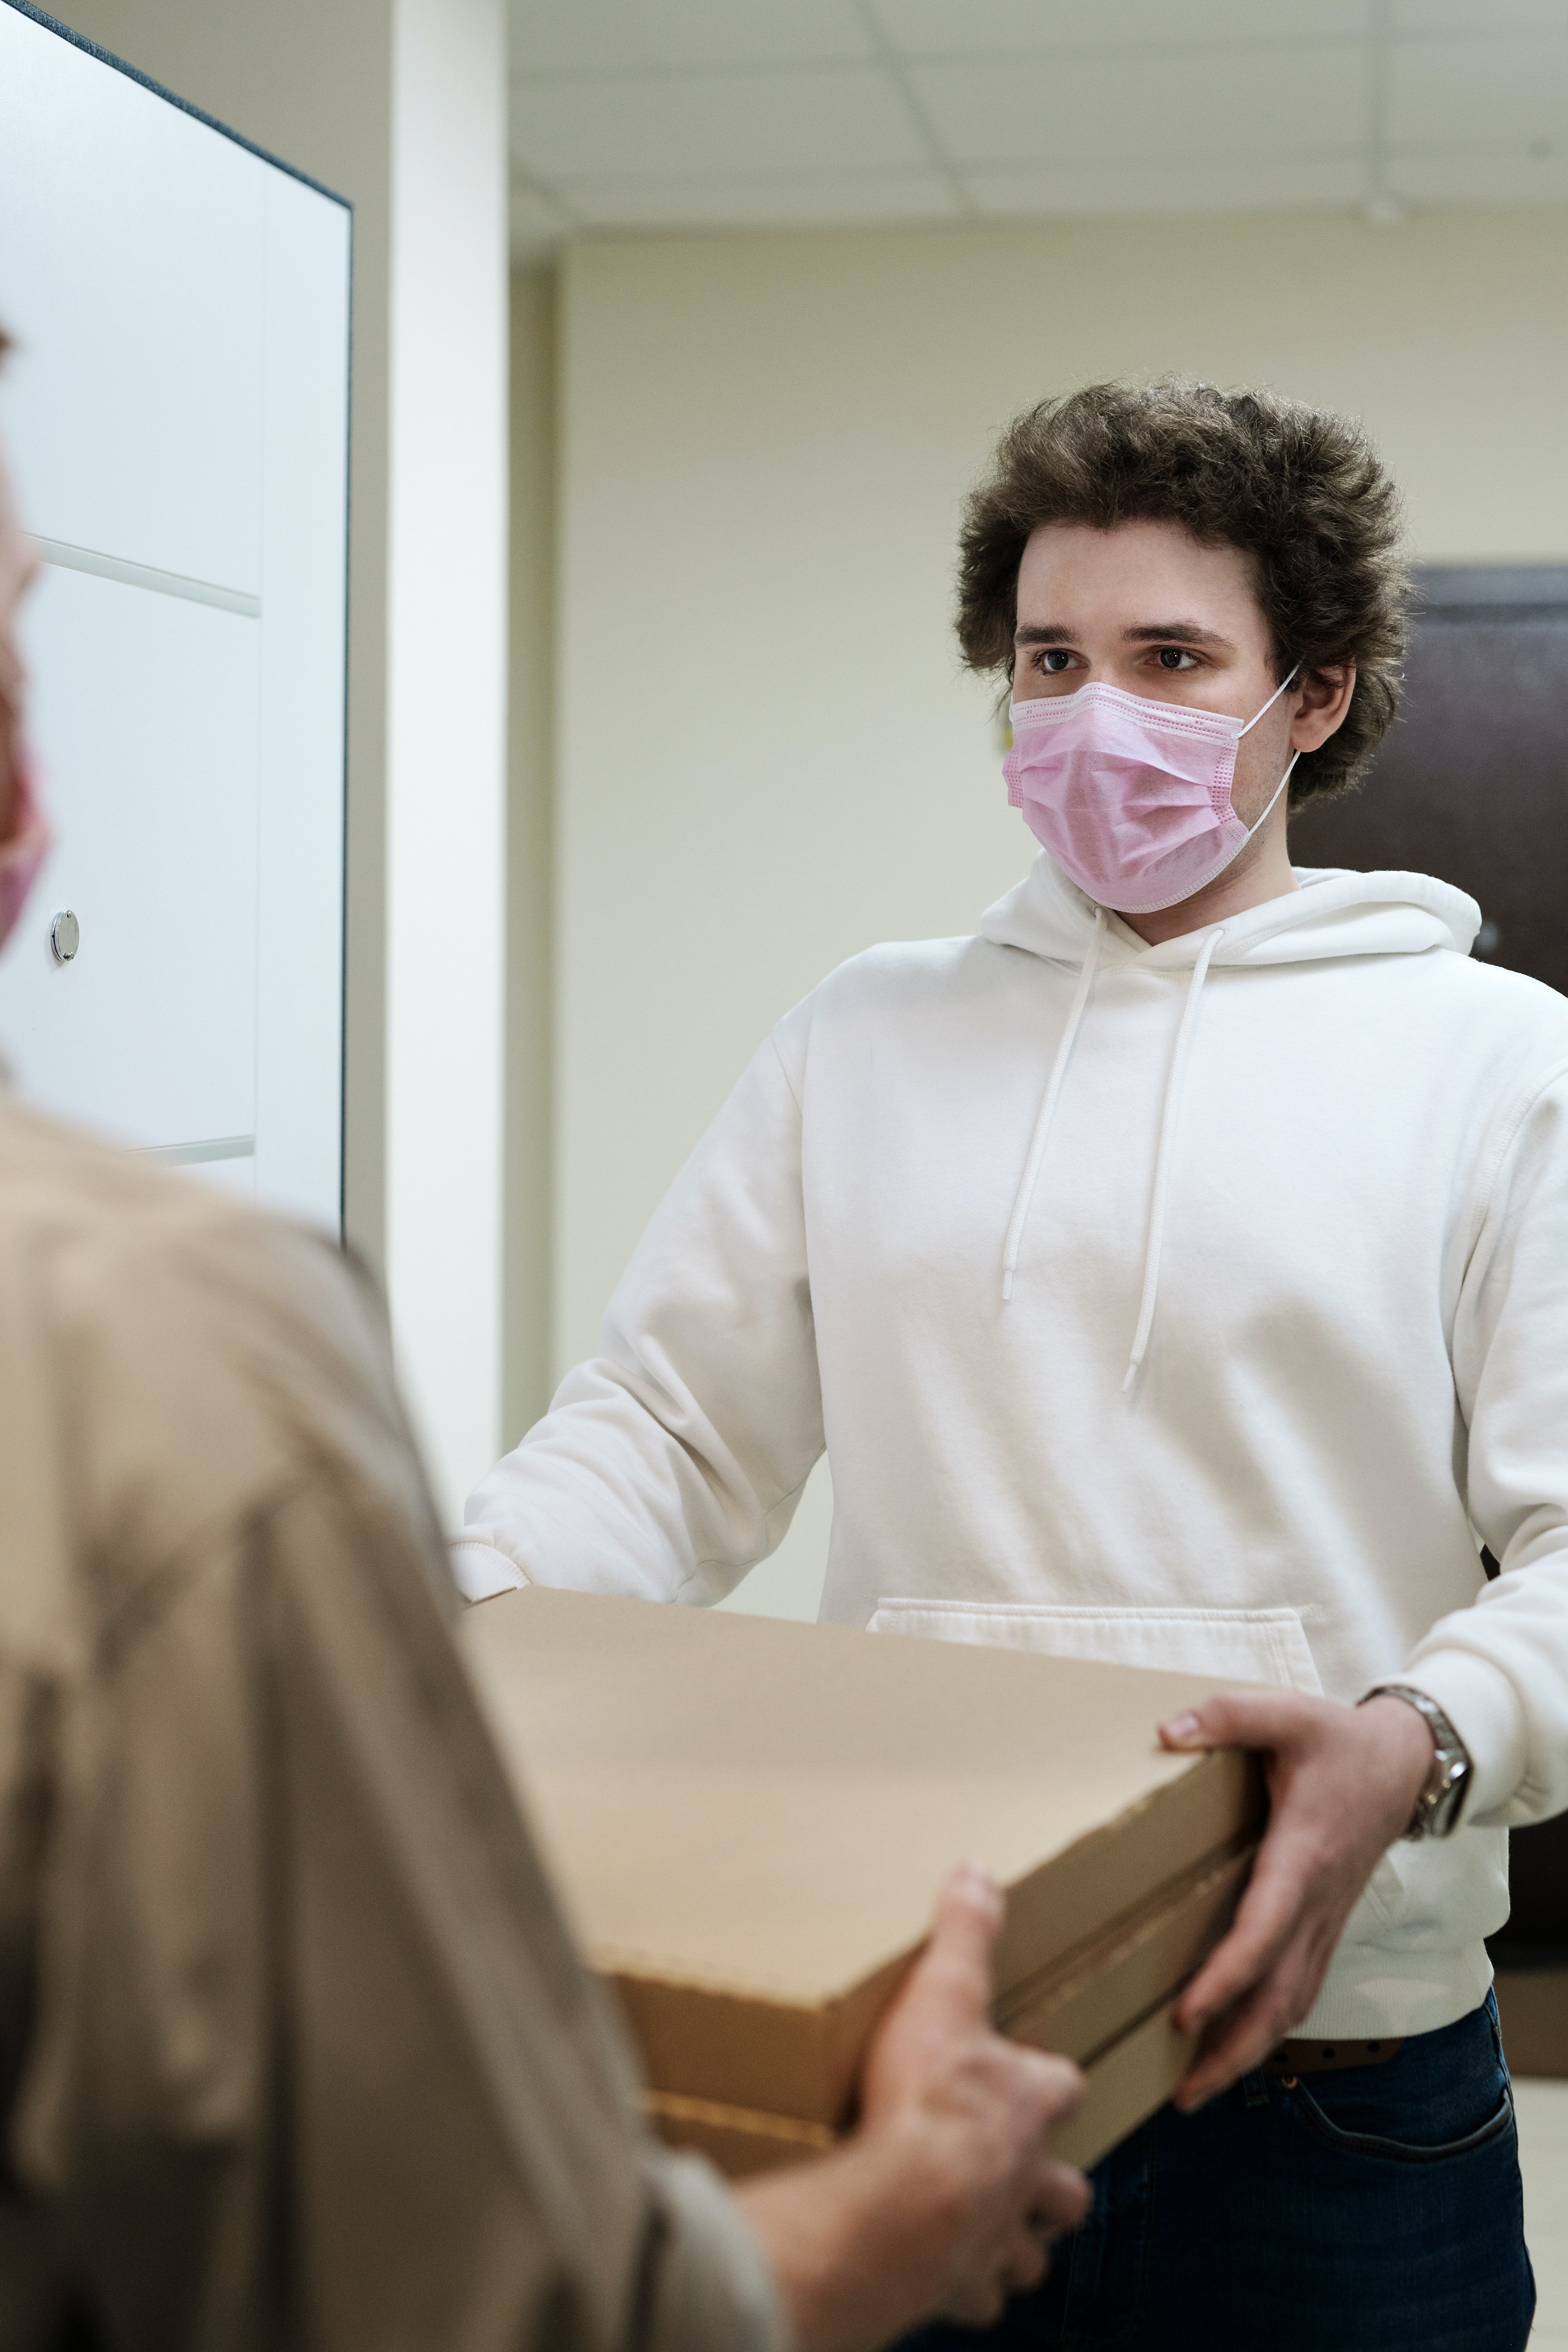 Man in a face mask receiving a pizza delivery | Photo: Pexels